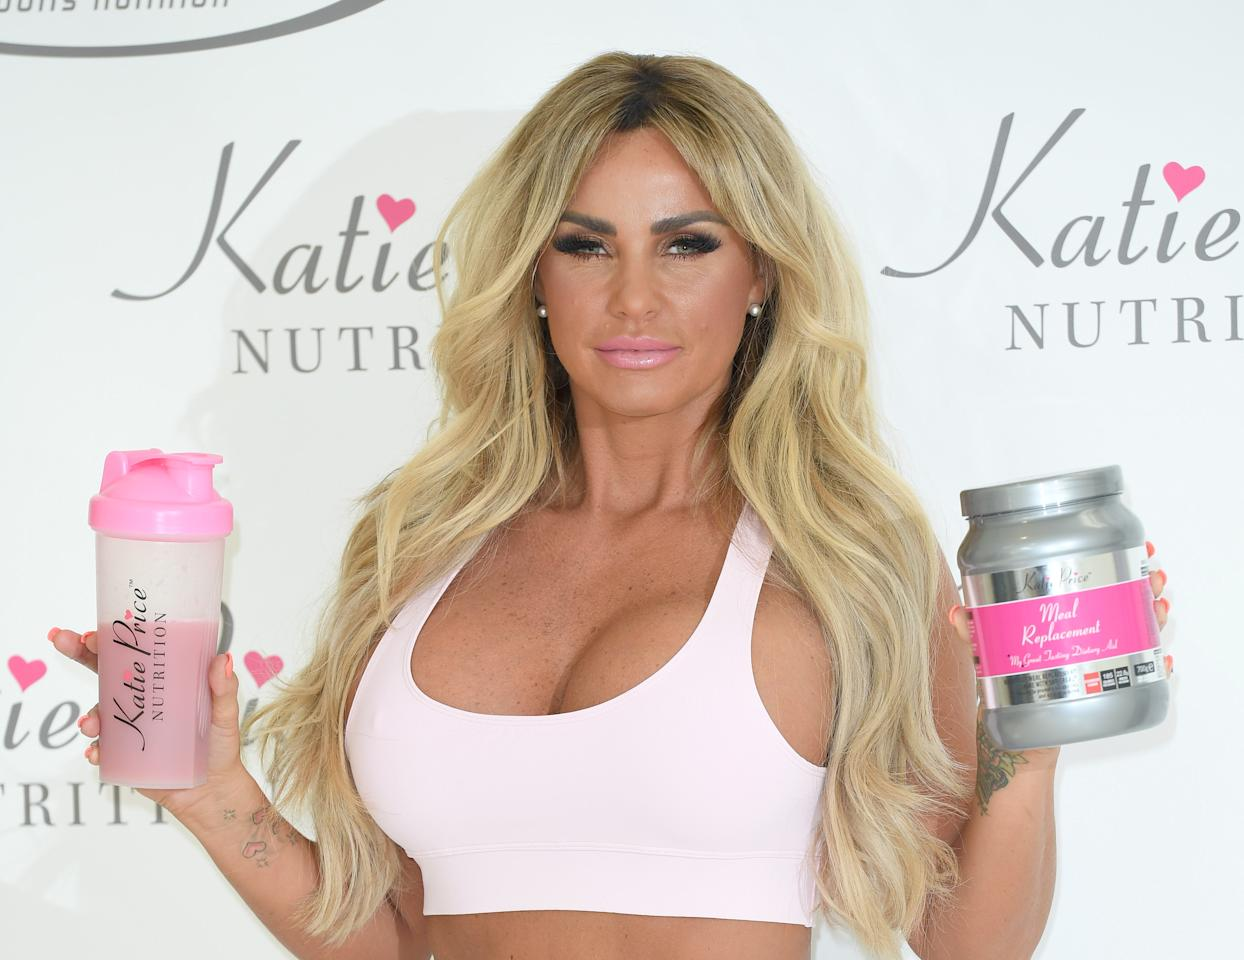 """<p>Earlier this year, Katie Price released a diet range of meal replacement shakes. The drinks reportedly decrease the need to snack and support the maintenance and toning of muscles. The BDA have warned that rapid weight loss is not sustainable and that fads such as these are not a healthy way to lose weight. Sarah Coe from the British Nutrition Foundation added: """"Meal replacement products can be useful for people that have a lot of weight to lose, but should always be used under supervision from a health professional."""" <i>[Photo: Getty]</i> </p>"""